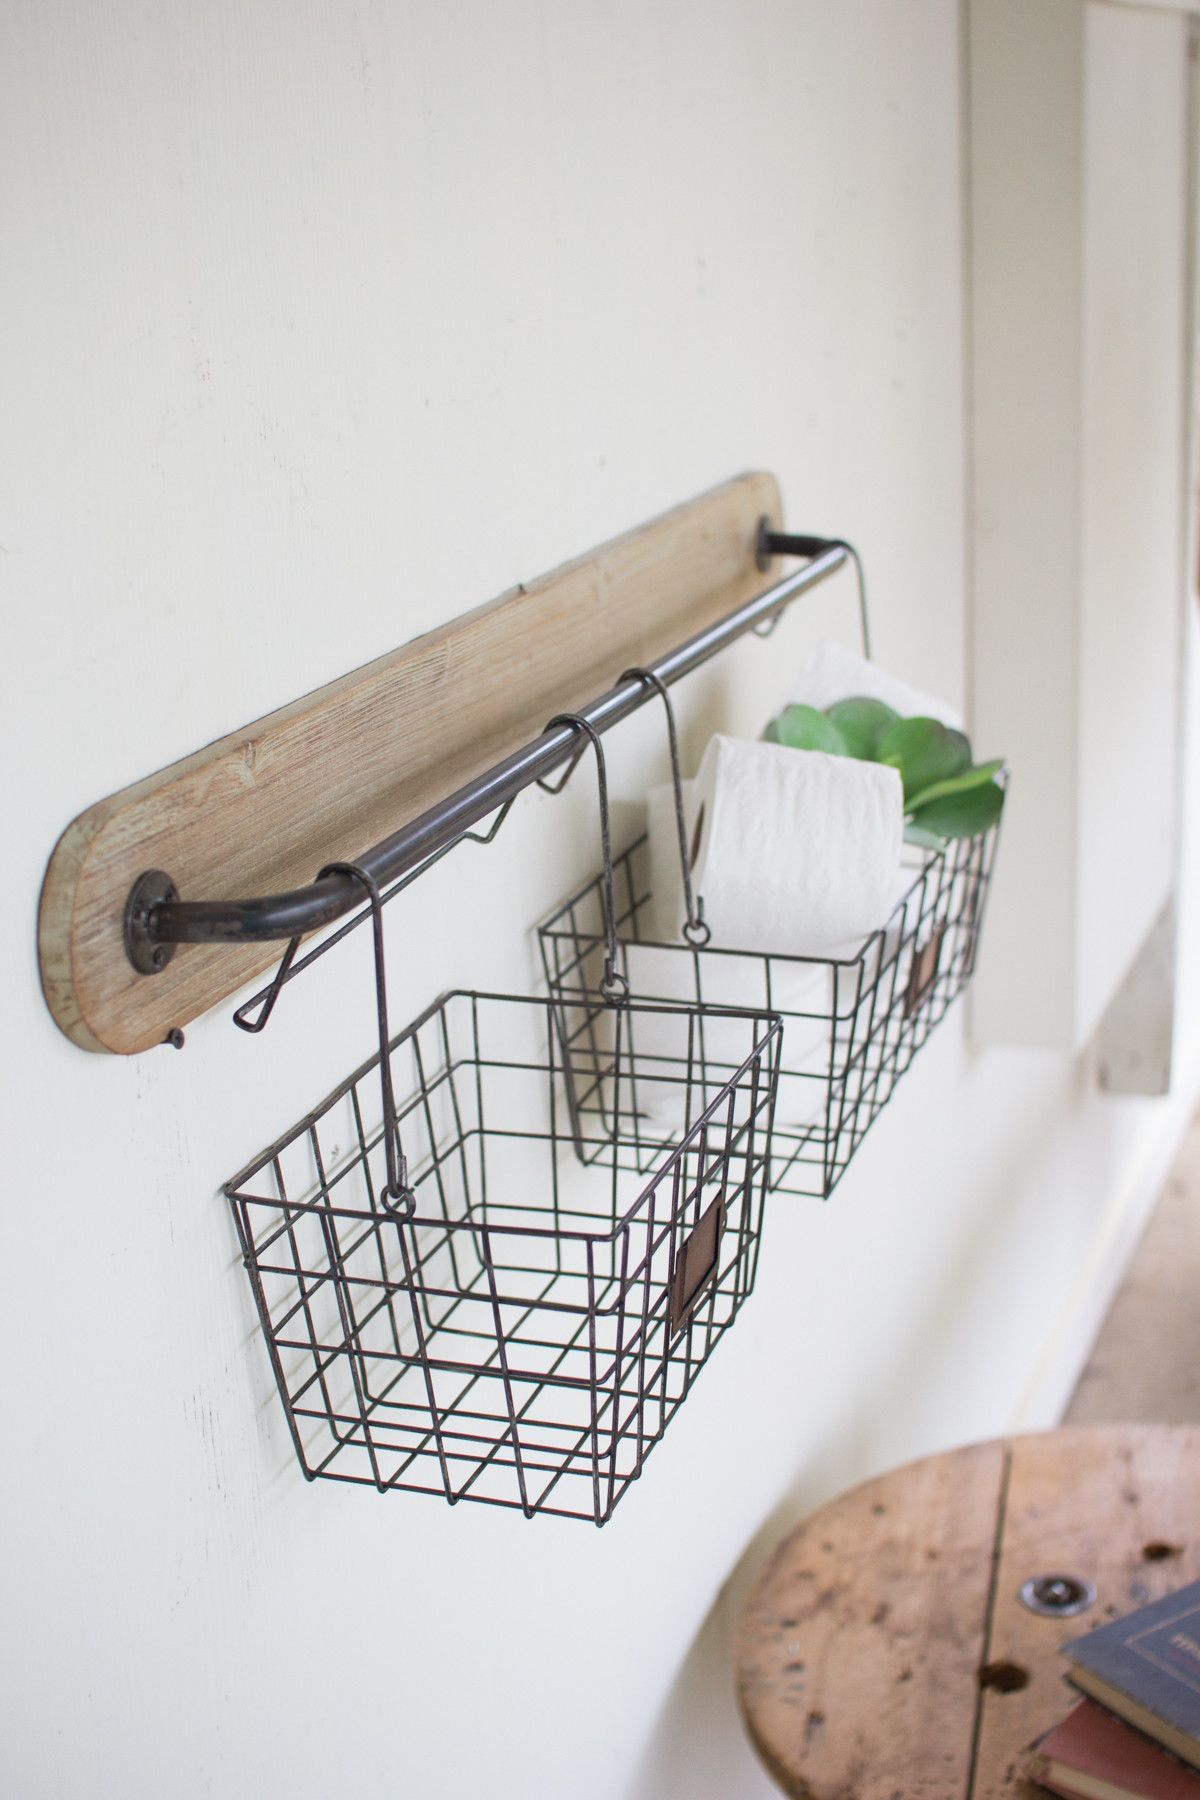 Bathroom wall storage baskets - Wood And Metal Wall Bracket With 2 Wire Baskets